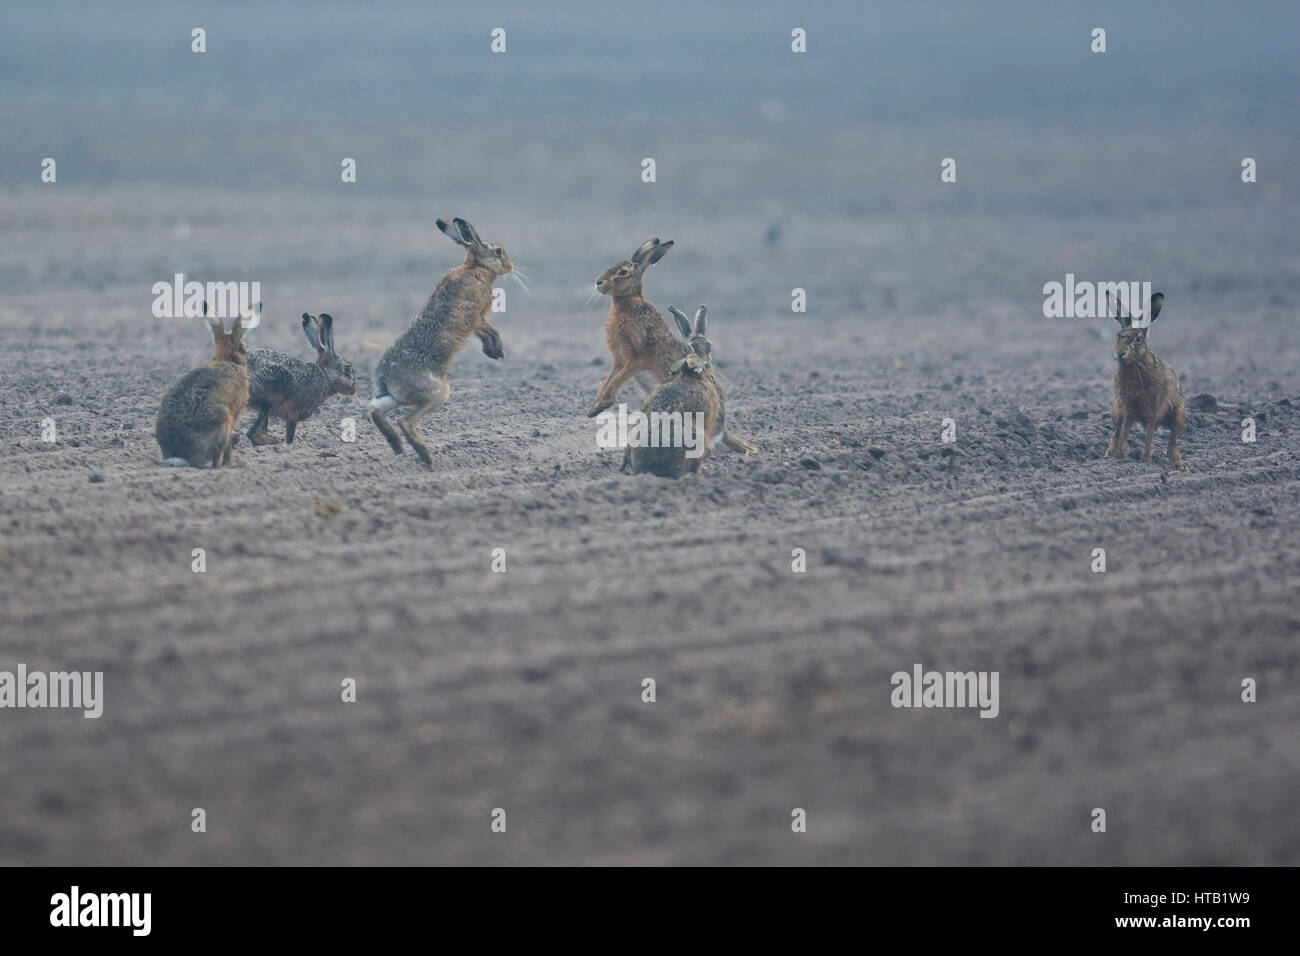 Hares, Hasen Stock Photo